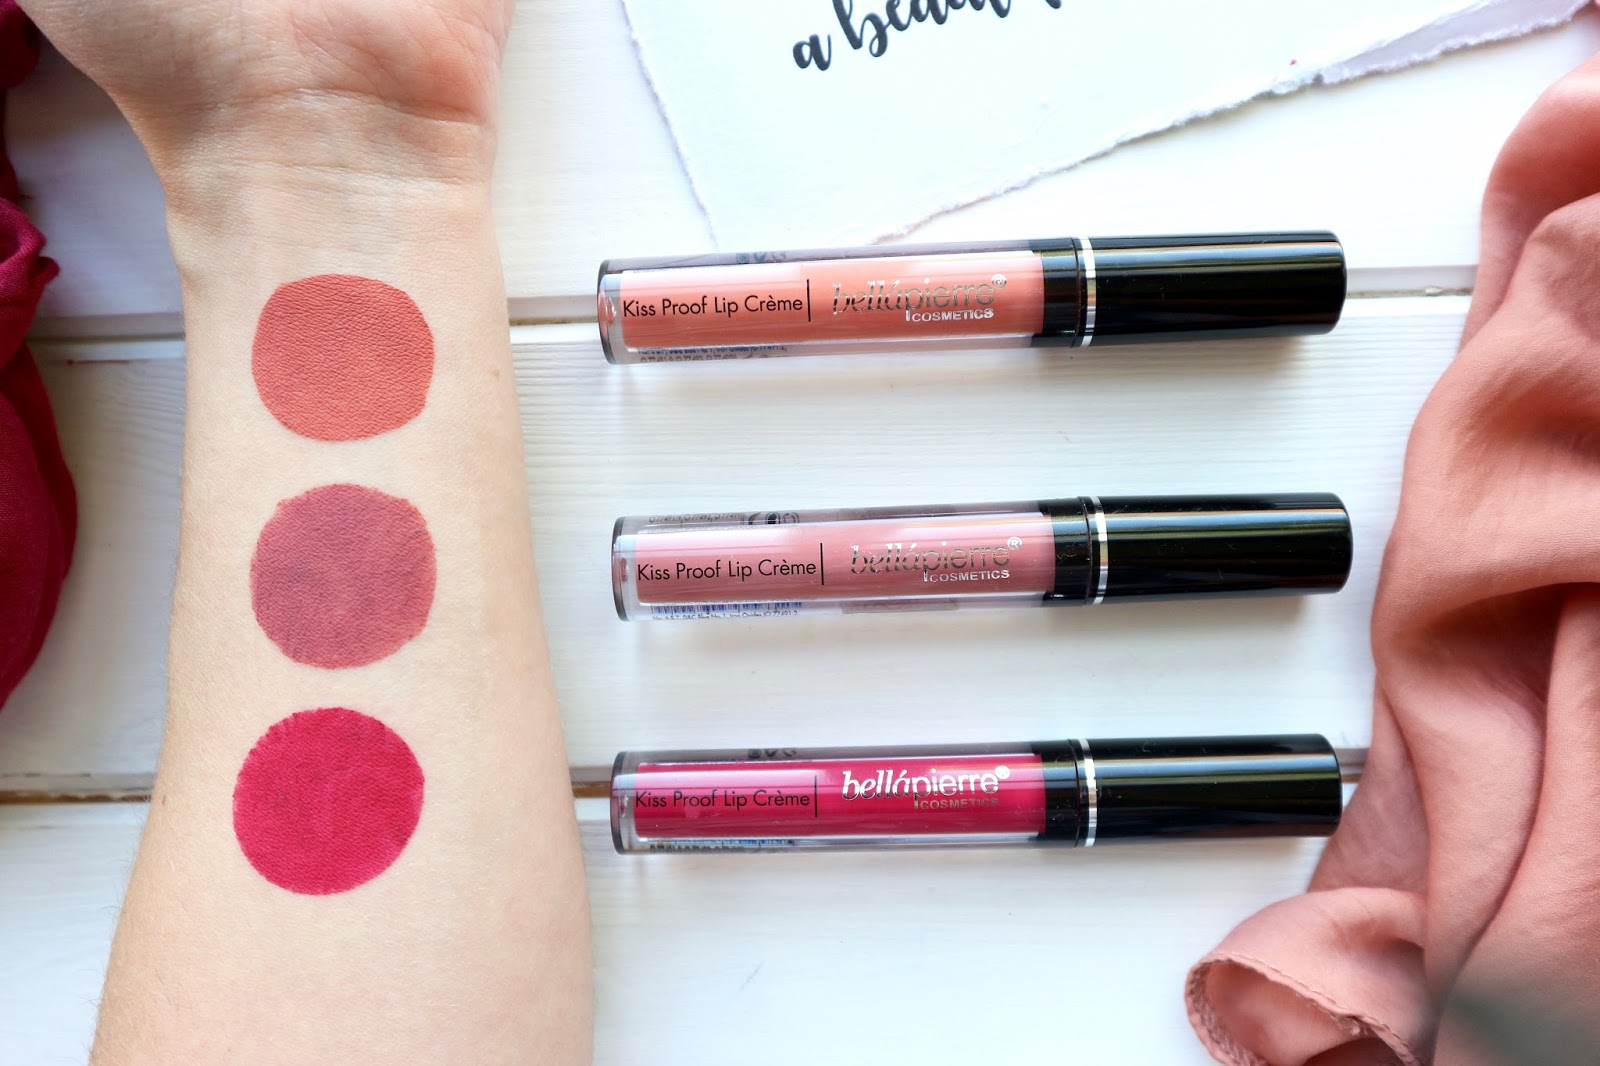 Trying A Trend Liquid Lipsticks Bellpierre Kiss Proof Lip Ecer No 4 Crme Shades Top To Bottom Coral Stone Antique Pink Hibiscus